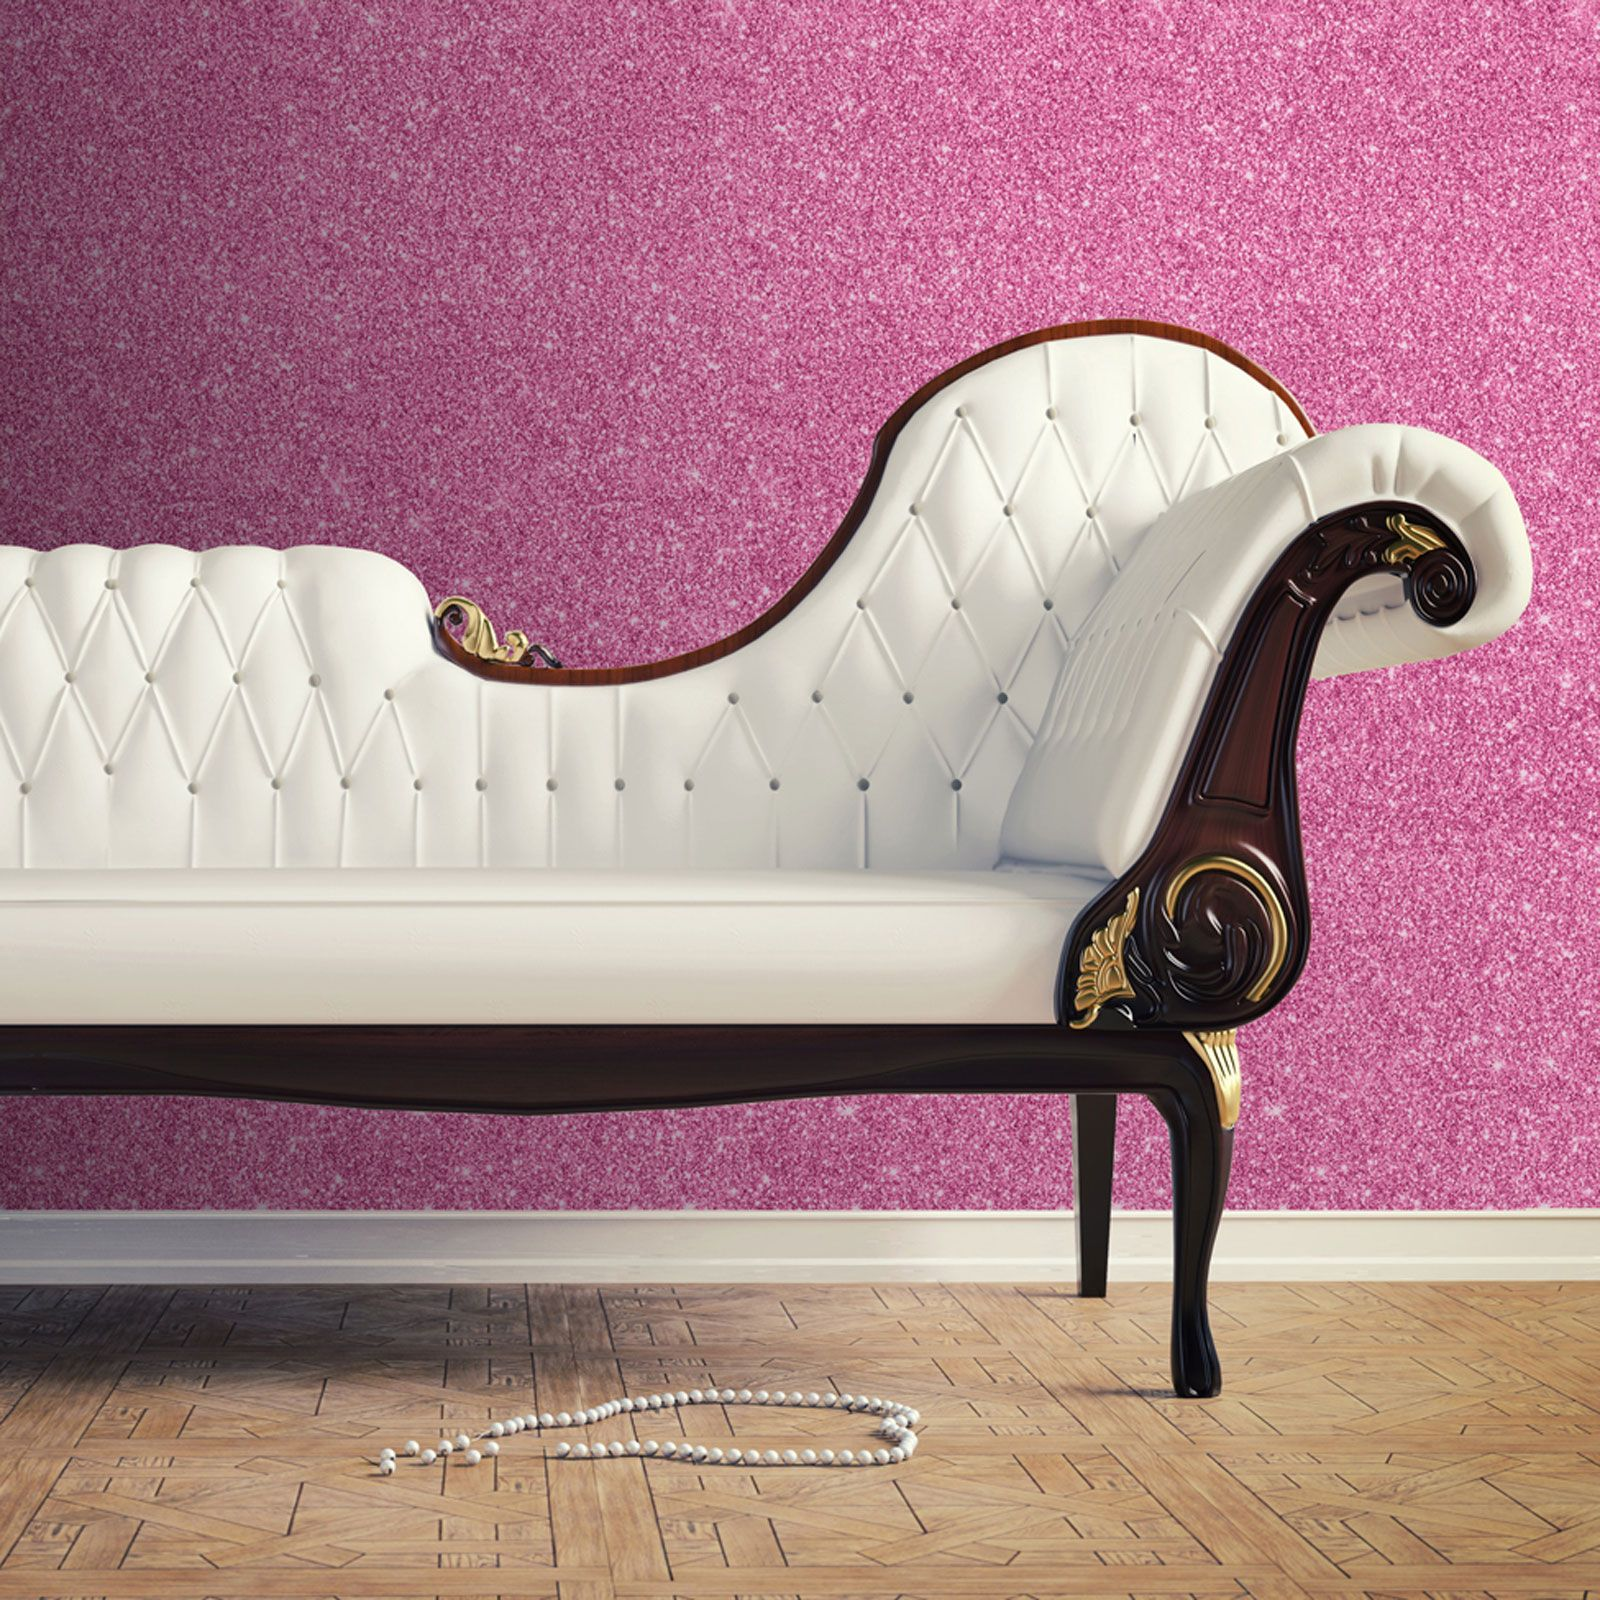 Pink And Purple Wallpaper For A Bedroom Sparkle Glitter Wallpaper Ideal For Feature Walls Pink Gold